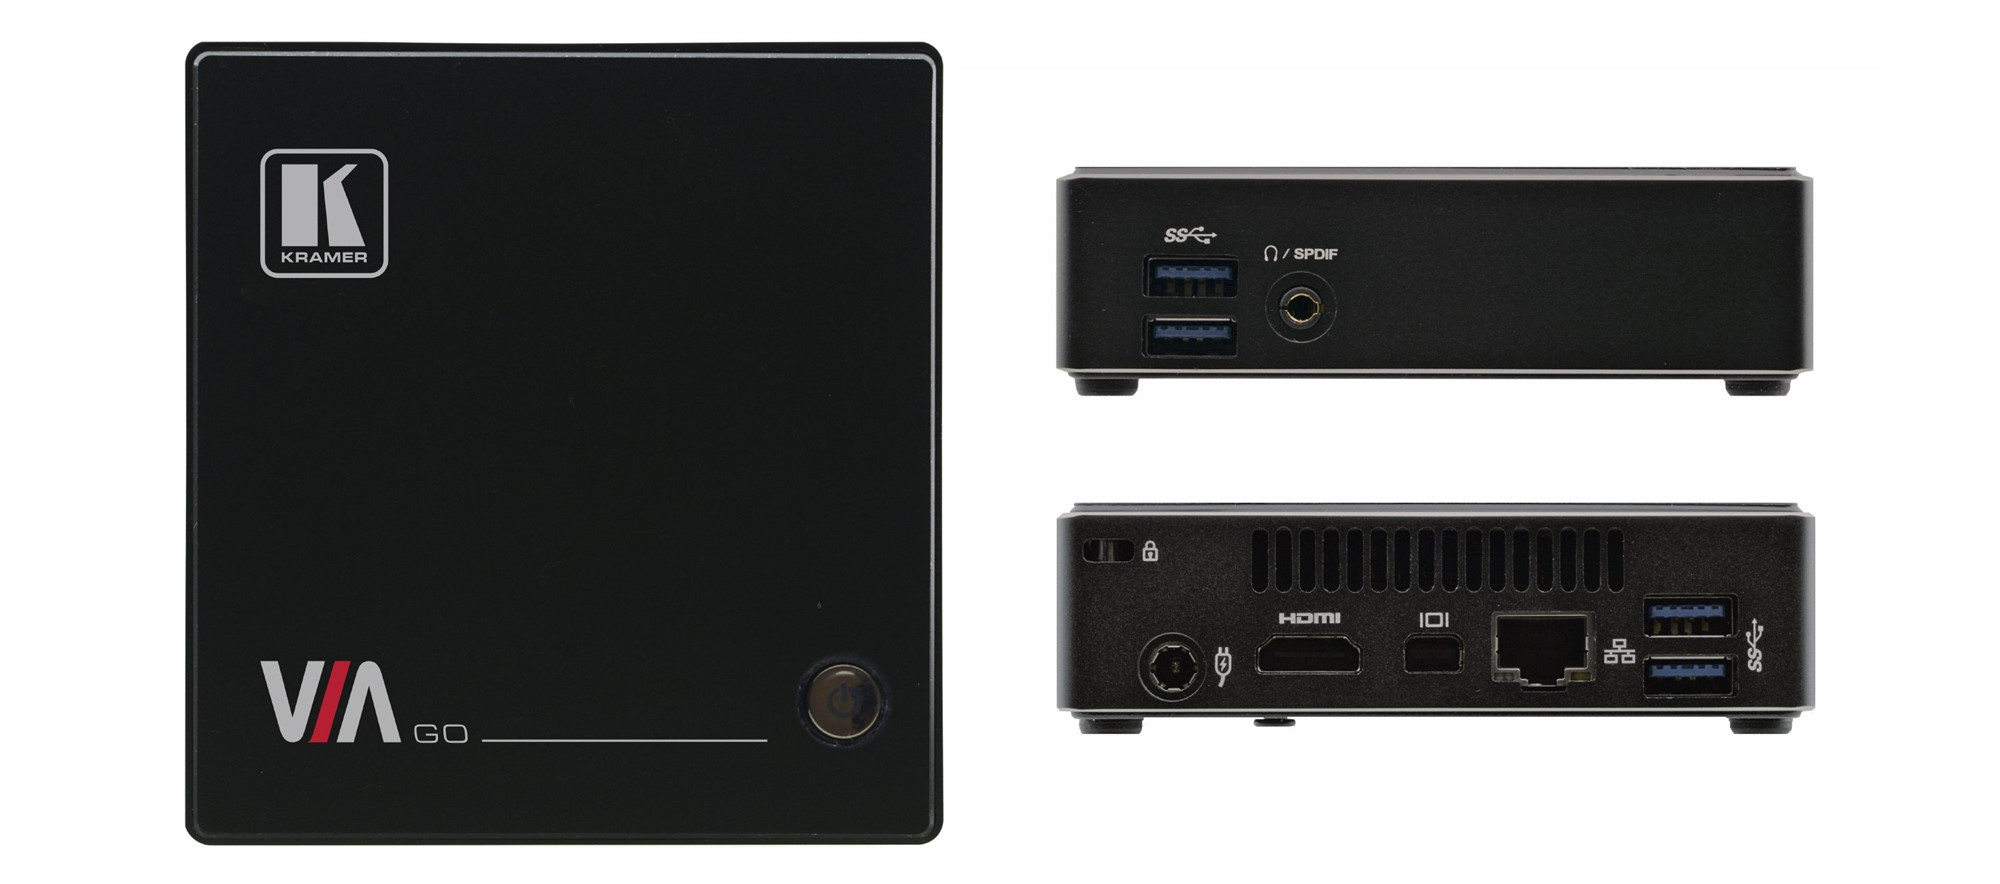 KRAMER ELECTRONICS VIA-GO VIA GO HDMI DESKTOP WIRELESS PRESENTATION SYSTEM